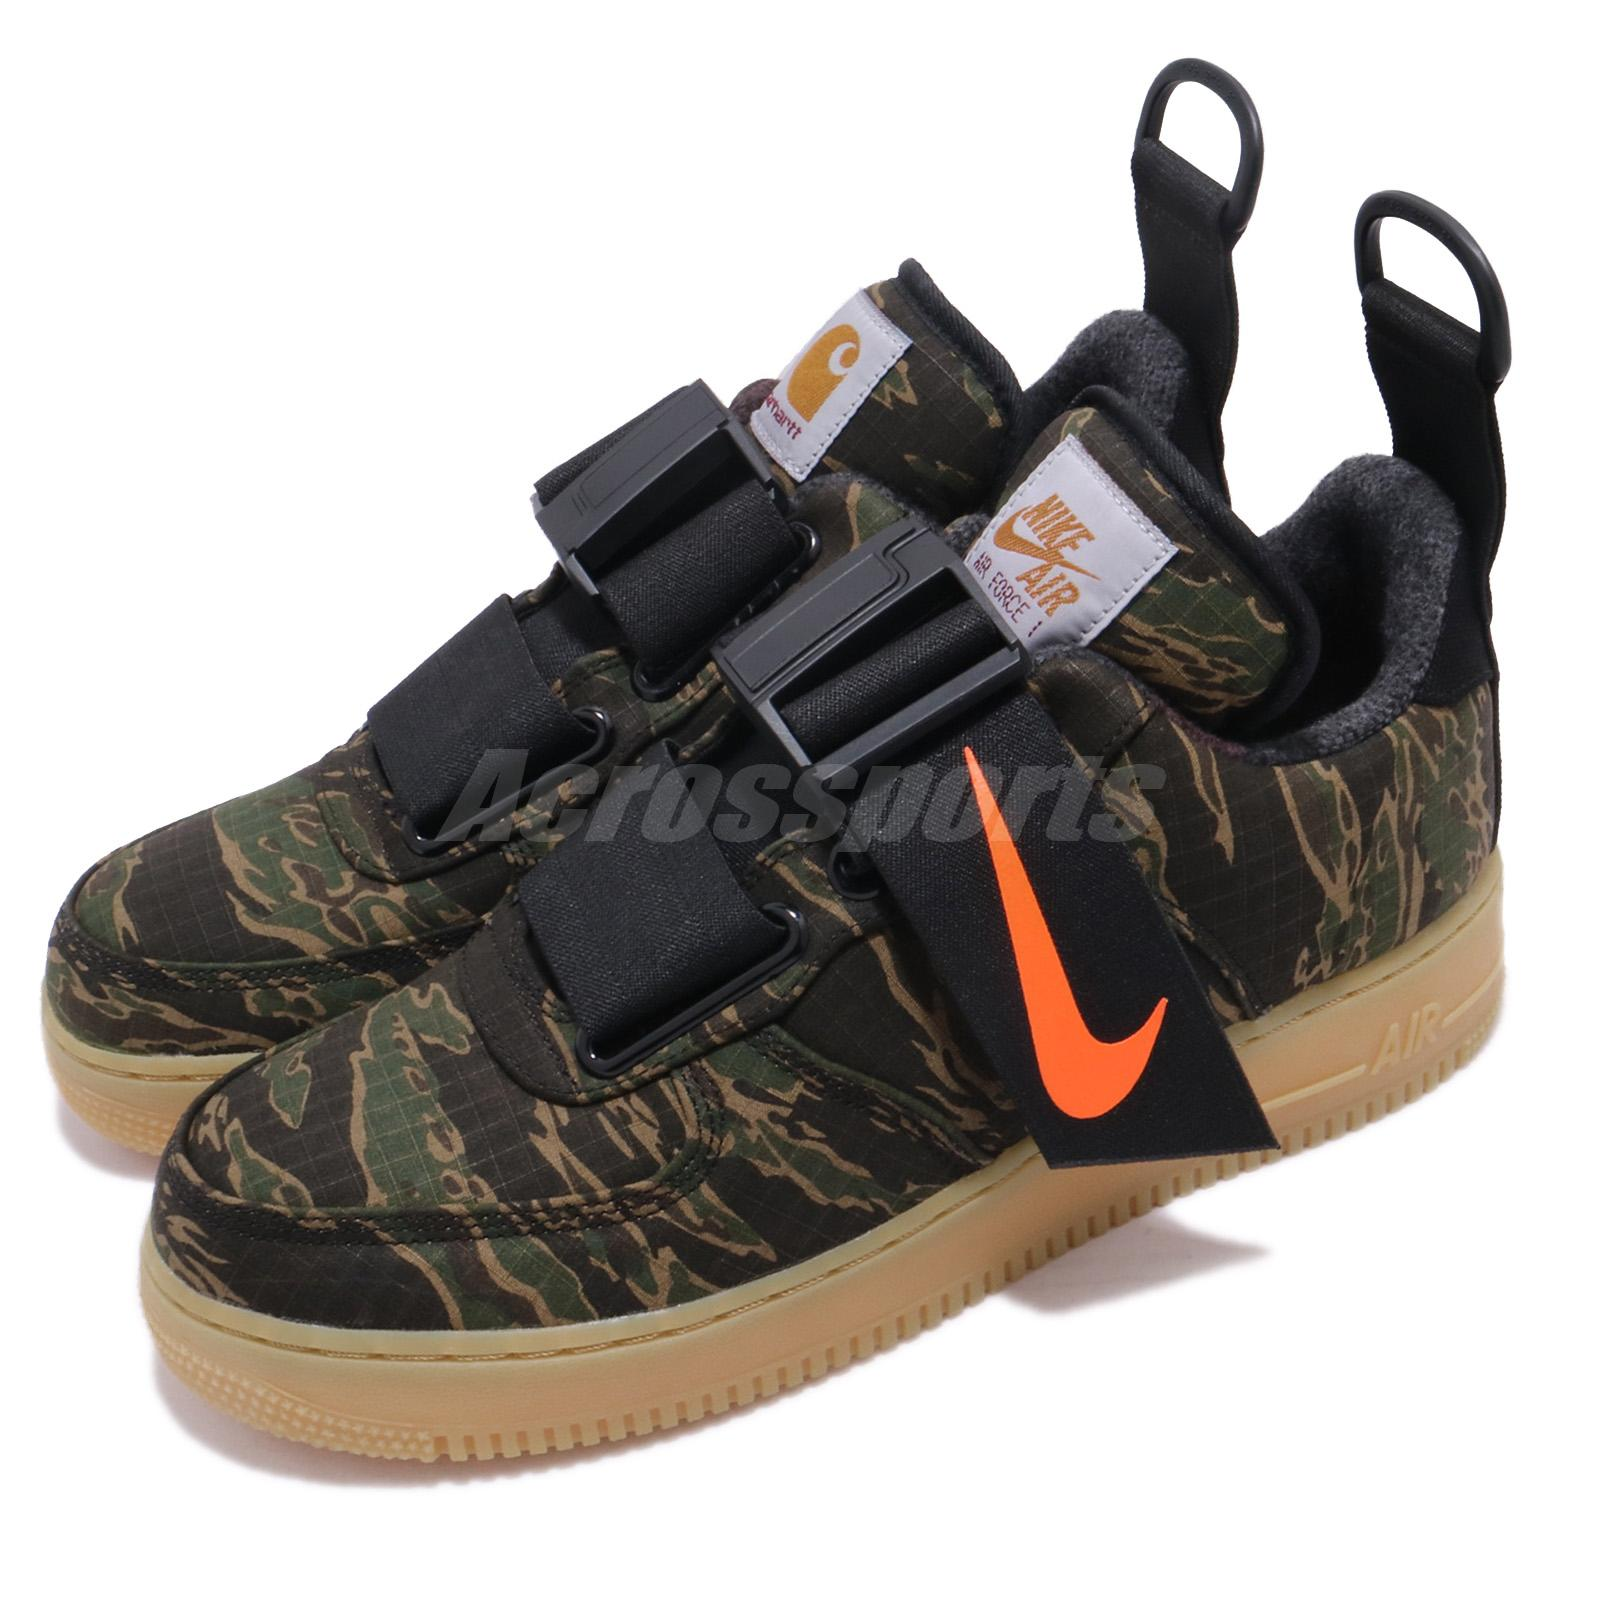 81013ef2387f5 Details about Nike Air Force 1 Low Utility X Carhartt WIP Tiger Camo Green  Orange AV4112-300